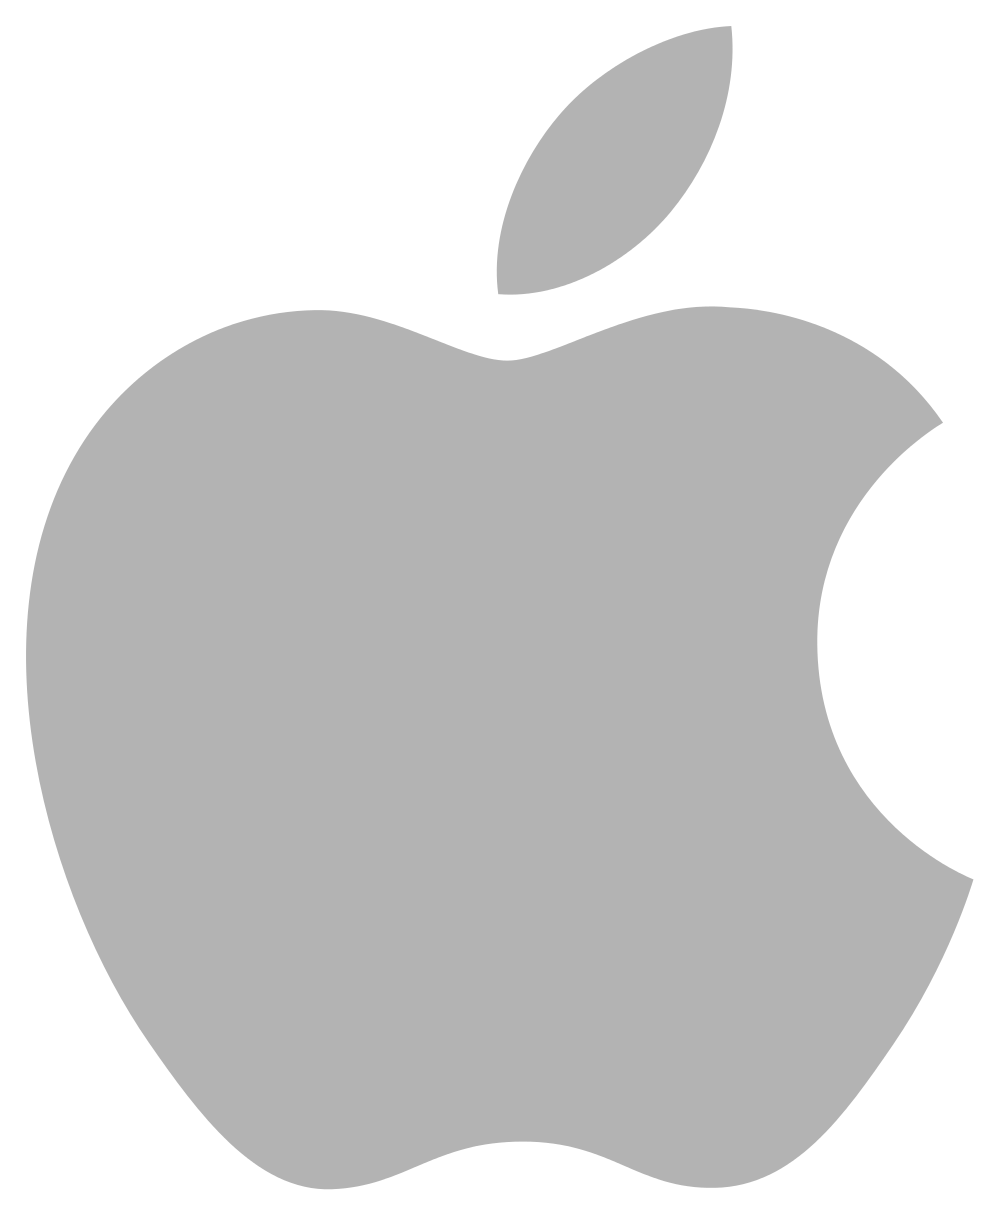 Apple logo black png. Latest icon gif